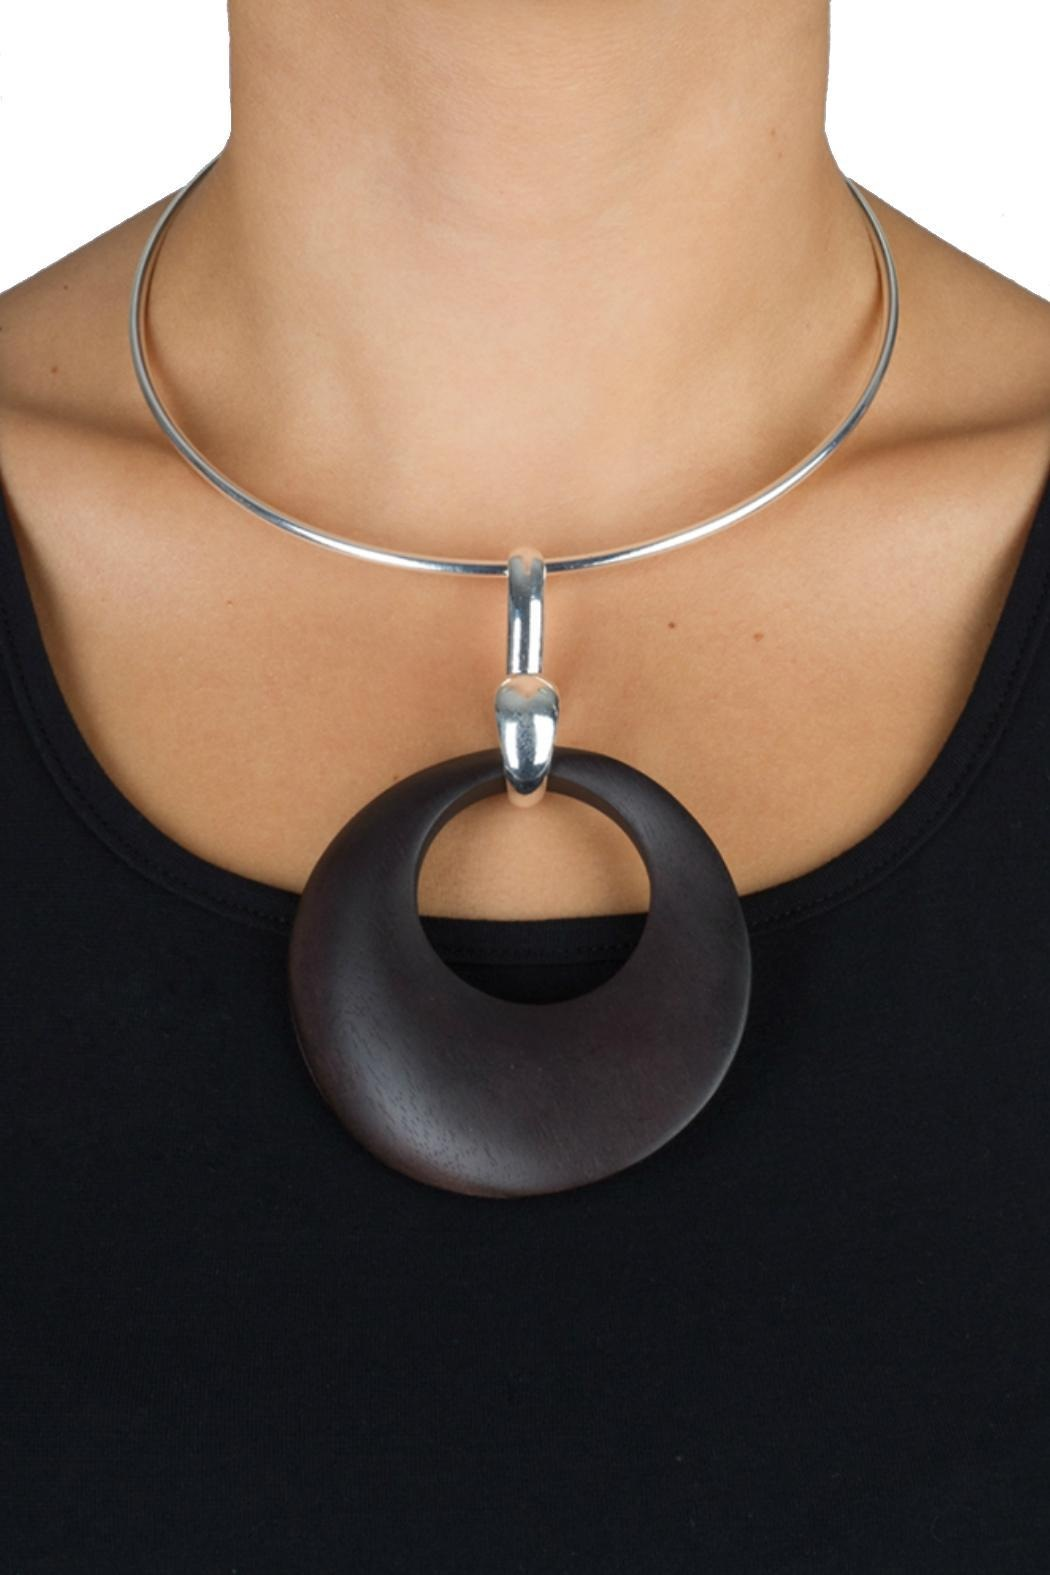 ubu-paris-jewellery-ubu-paris-claire-necklace-from-east-of-england-by-walkers